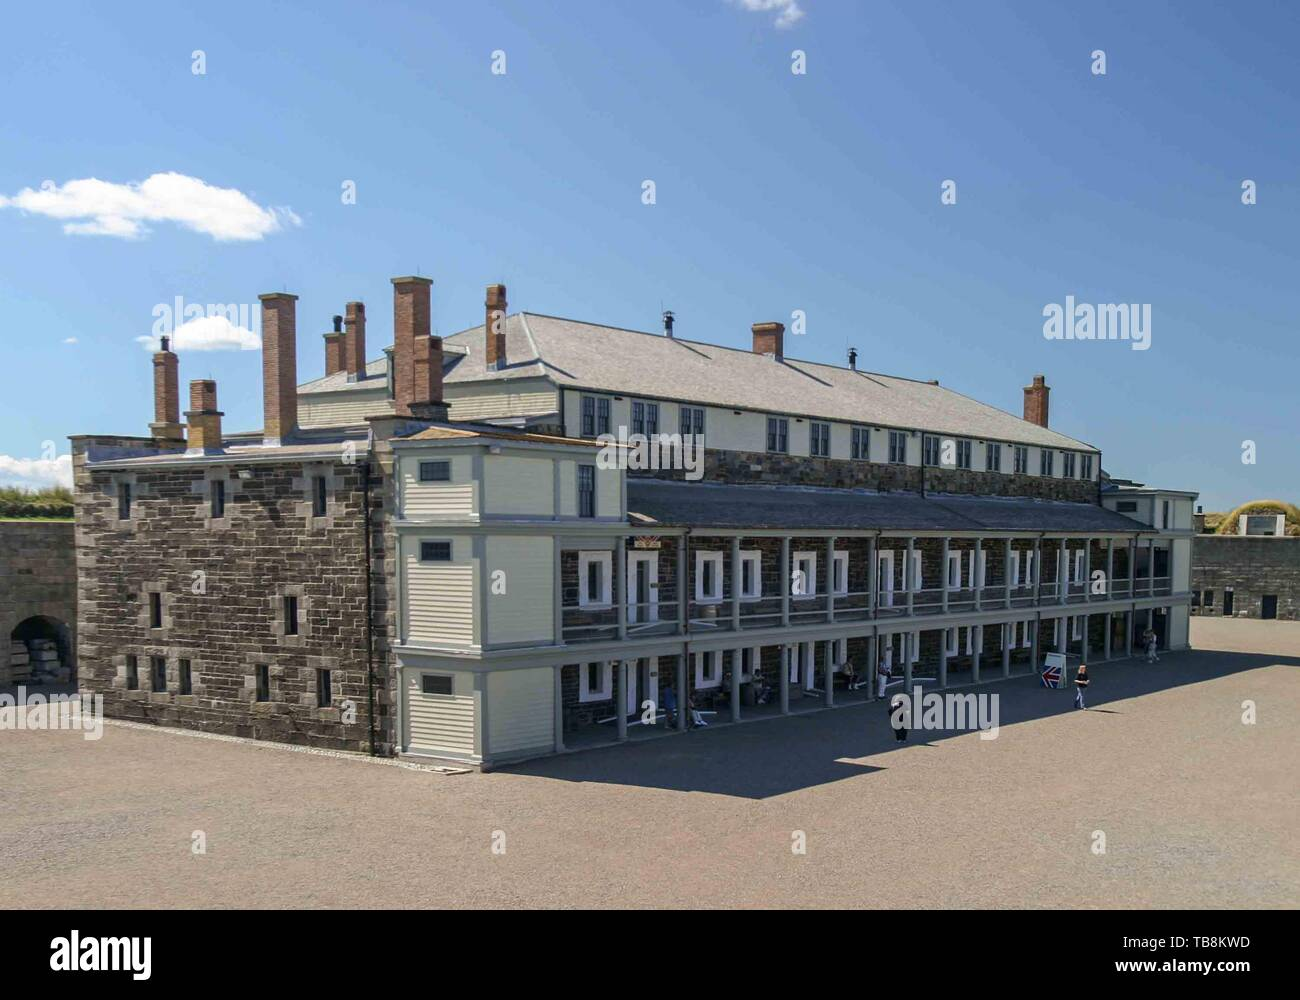 Halifax, Nova Scotia, Canada. 5th Sep, 2005. Citadel Hill (Fort George), a Canadian National Historic Site in Halifax, Nova Scotia, has been restored to its historic appearance. A living history museum, the fort is among the most visited sites in Atlantic Canada. Credit: Arnold Drapkin/ZUMA Wire/Alamy Live News - Stock Image